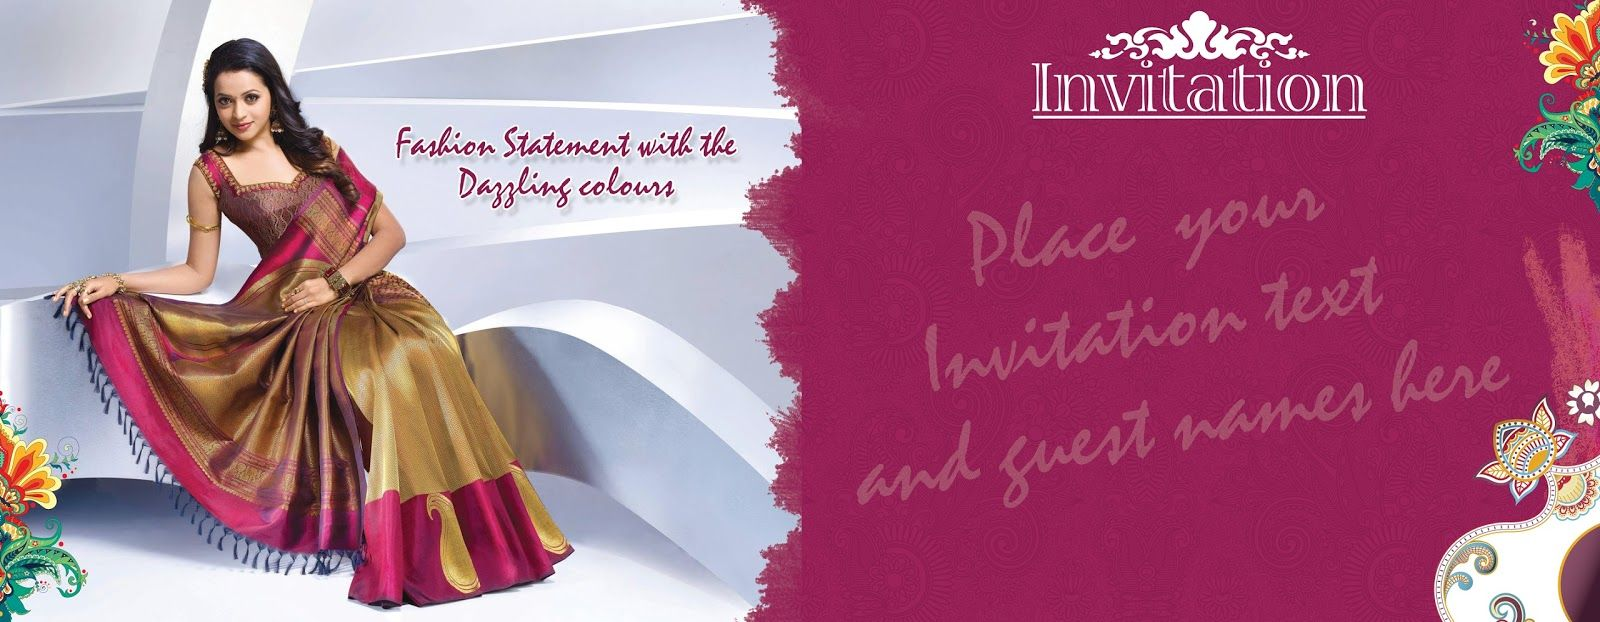 Image result for invitation card format for inauguration in boutique image result for invitation card format for inauguration in boutique hd stopboris Choice Image